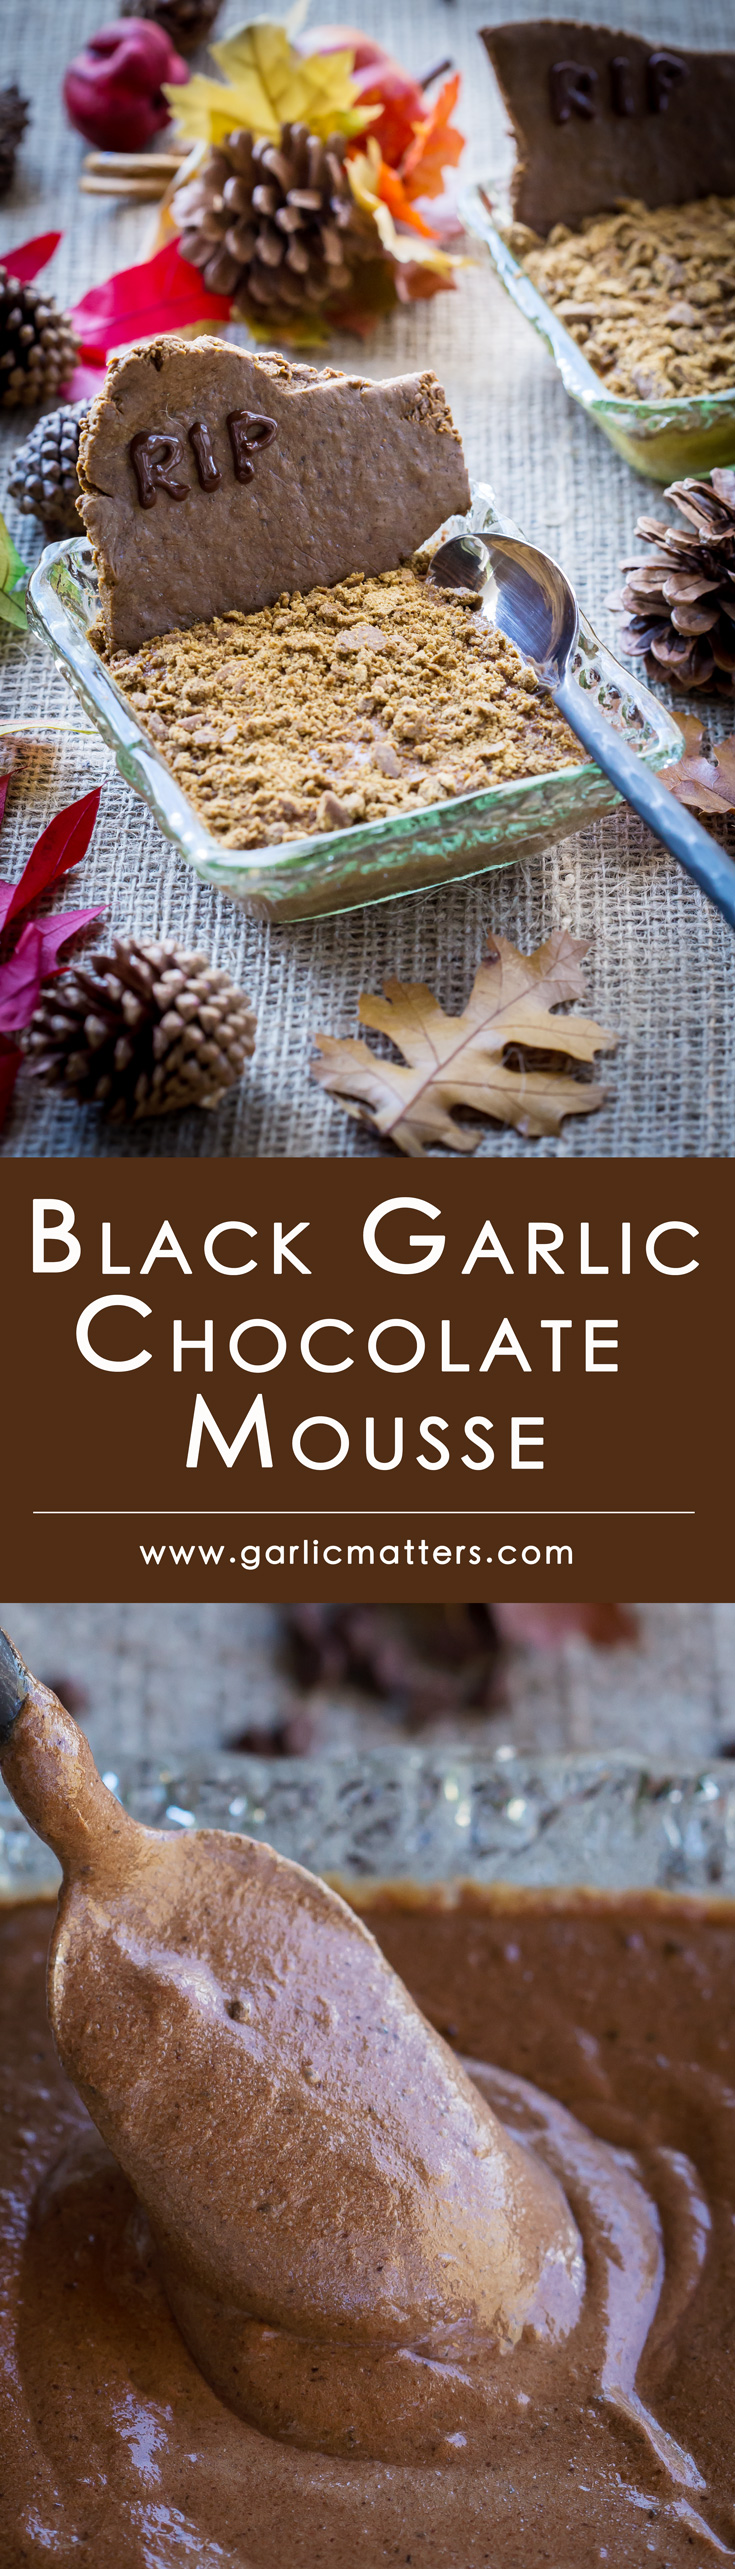 Black Garlic Chocolate Mousse is a gluten free, light yet creamy, spectacularly chocolaty and antioxidants rich dessert. Perfect make ahead party finale and a fun talking point. Yes, you can make chocolate taste better than you realised and you can learn how easy it is here! You could also try a fun Halloween inspired decoration to spook things up a bit!